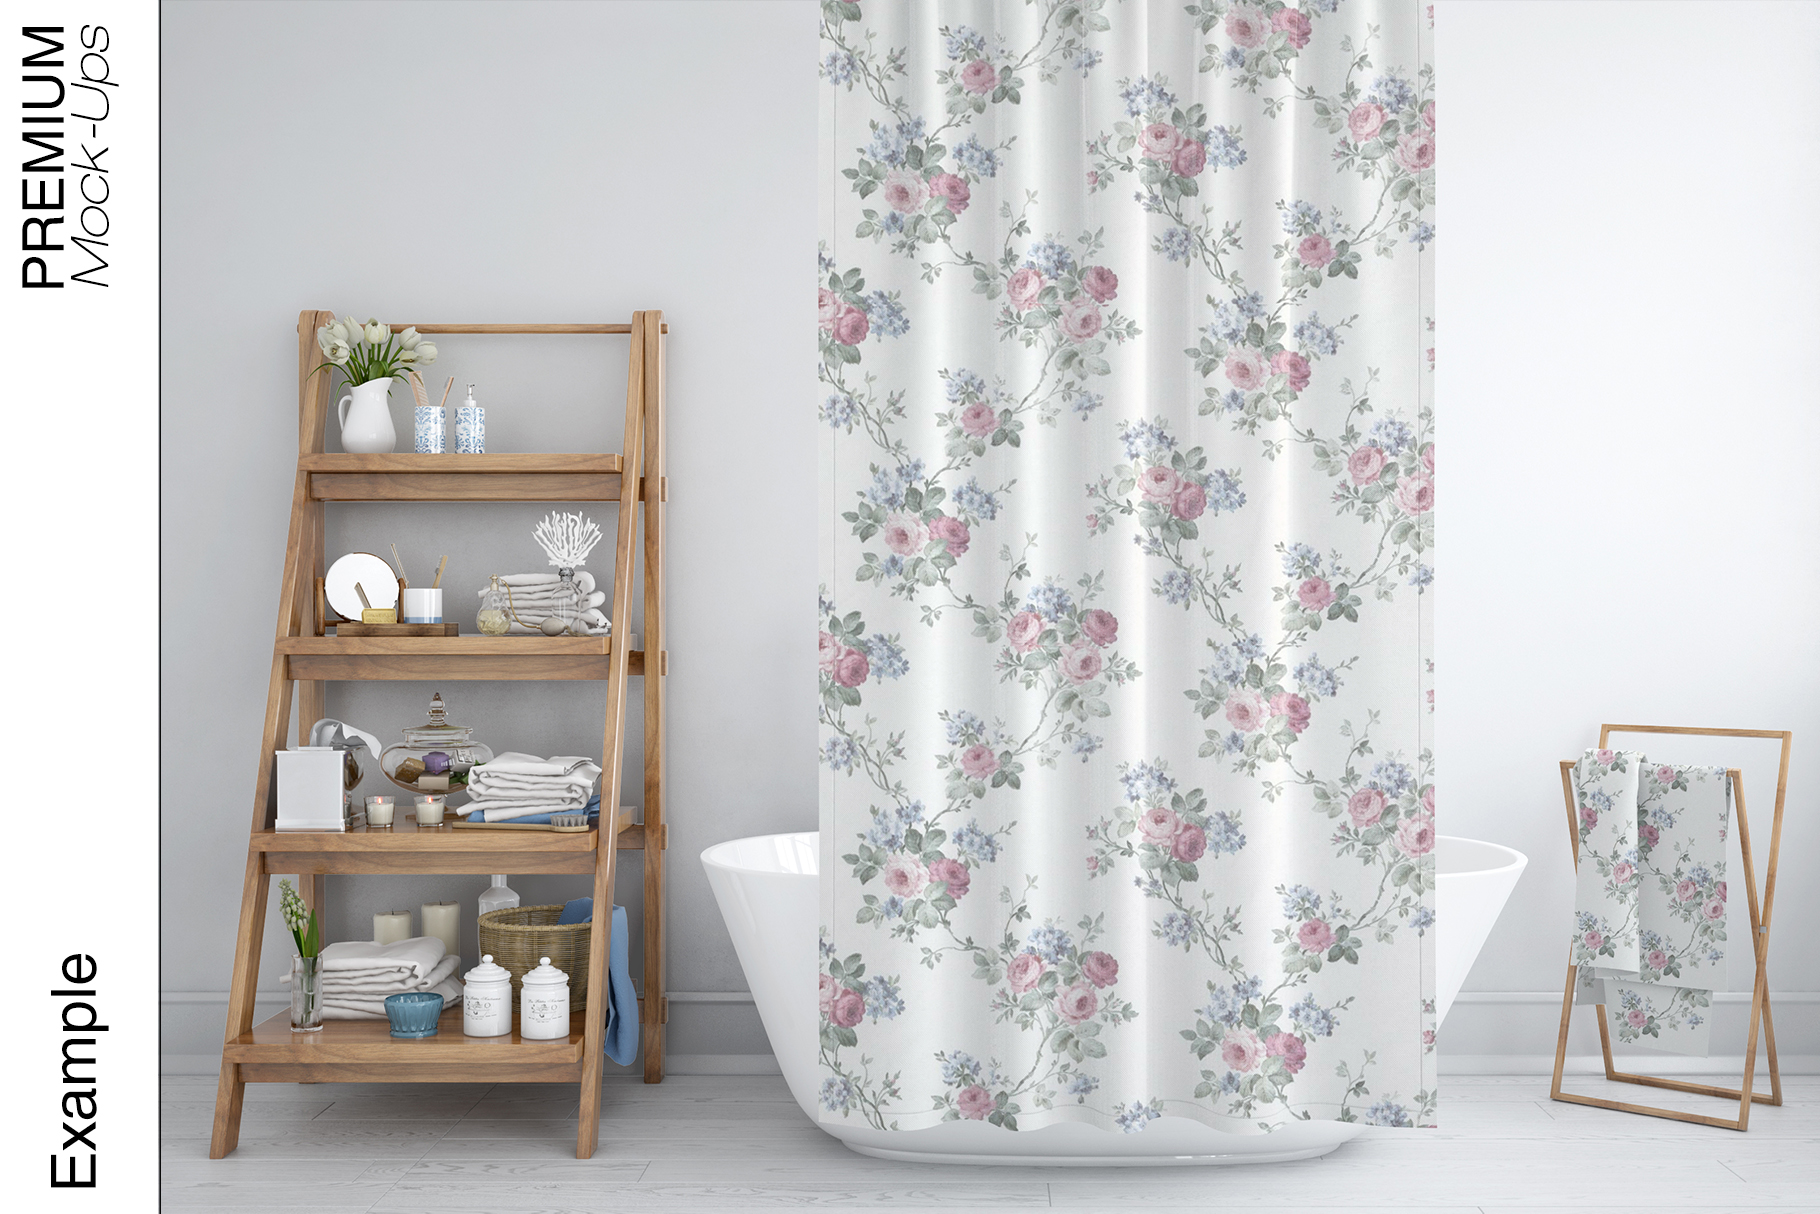 Bath Curtain Mockups example image 10